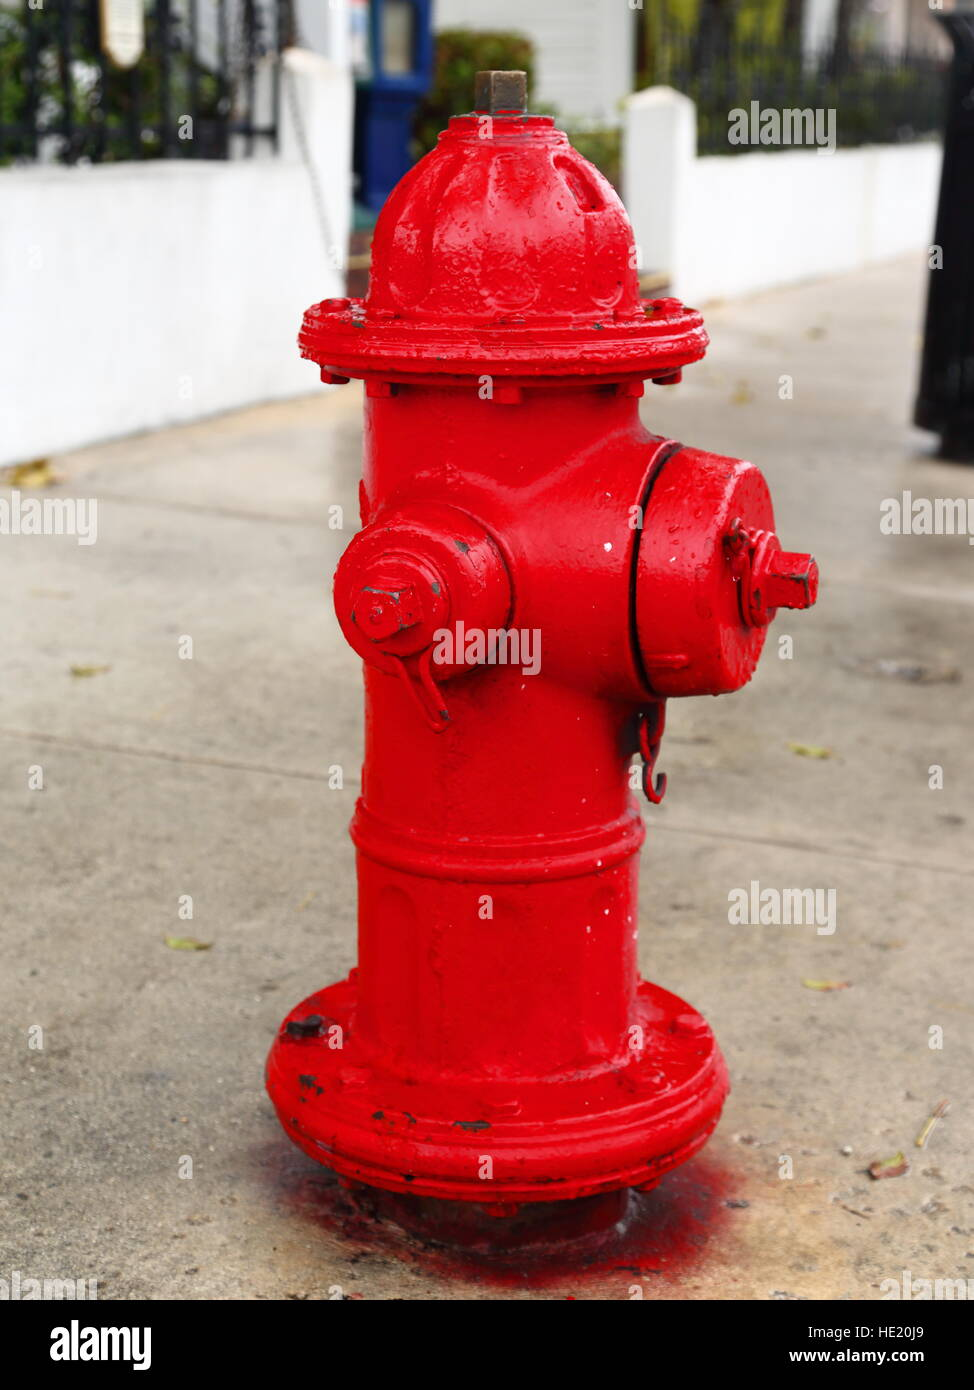 Red fire hydrant in Key West, Florida, USA - Stock Image